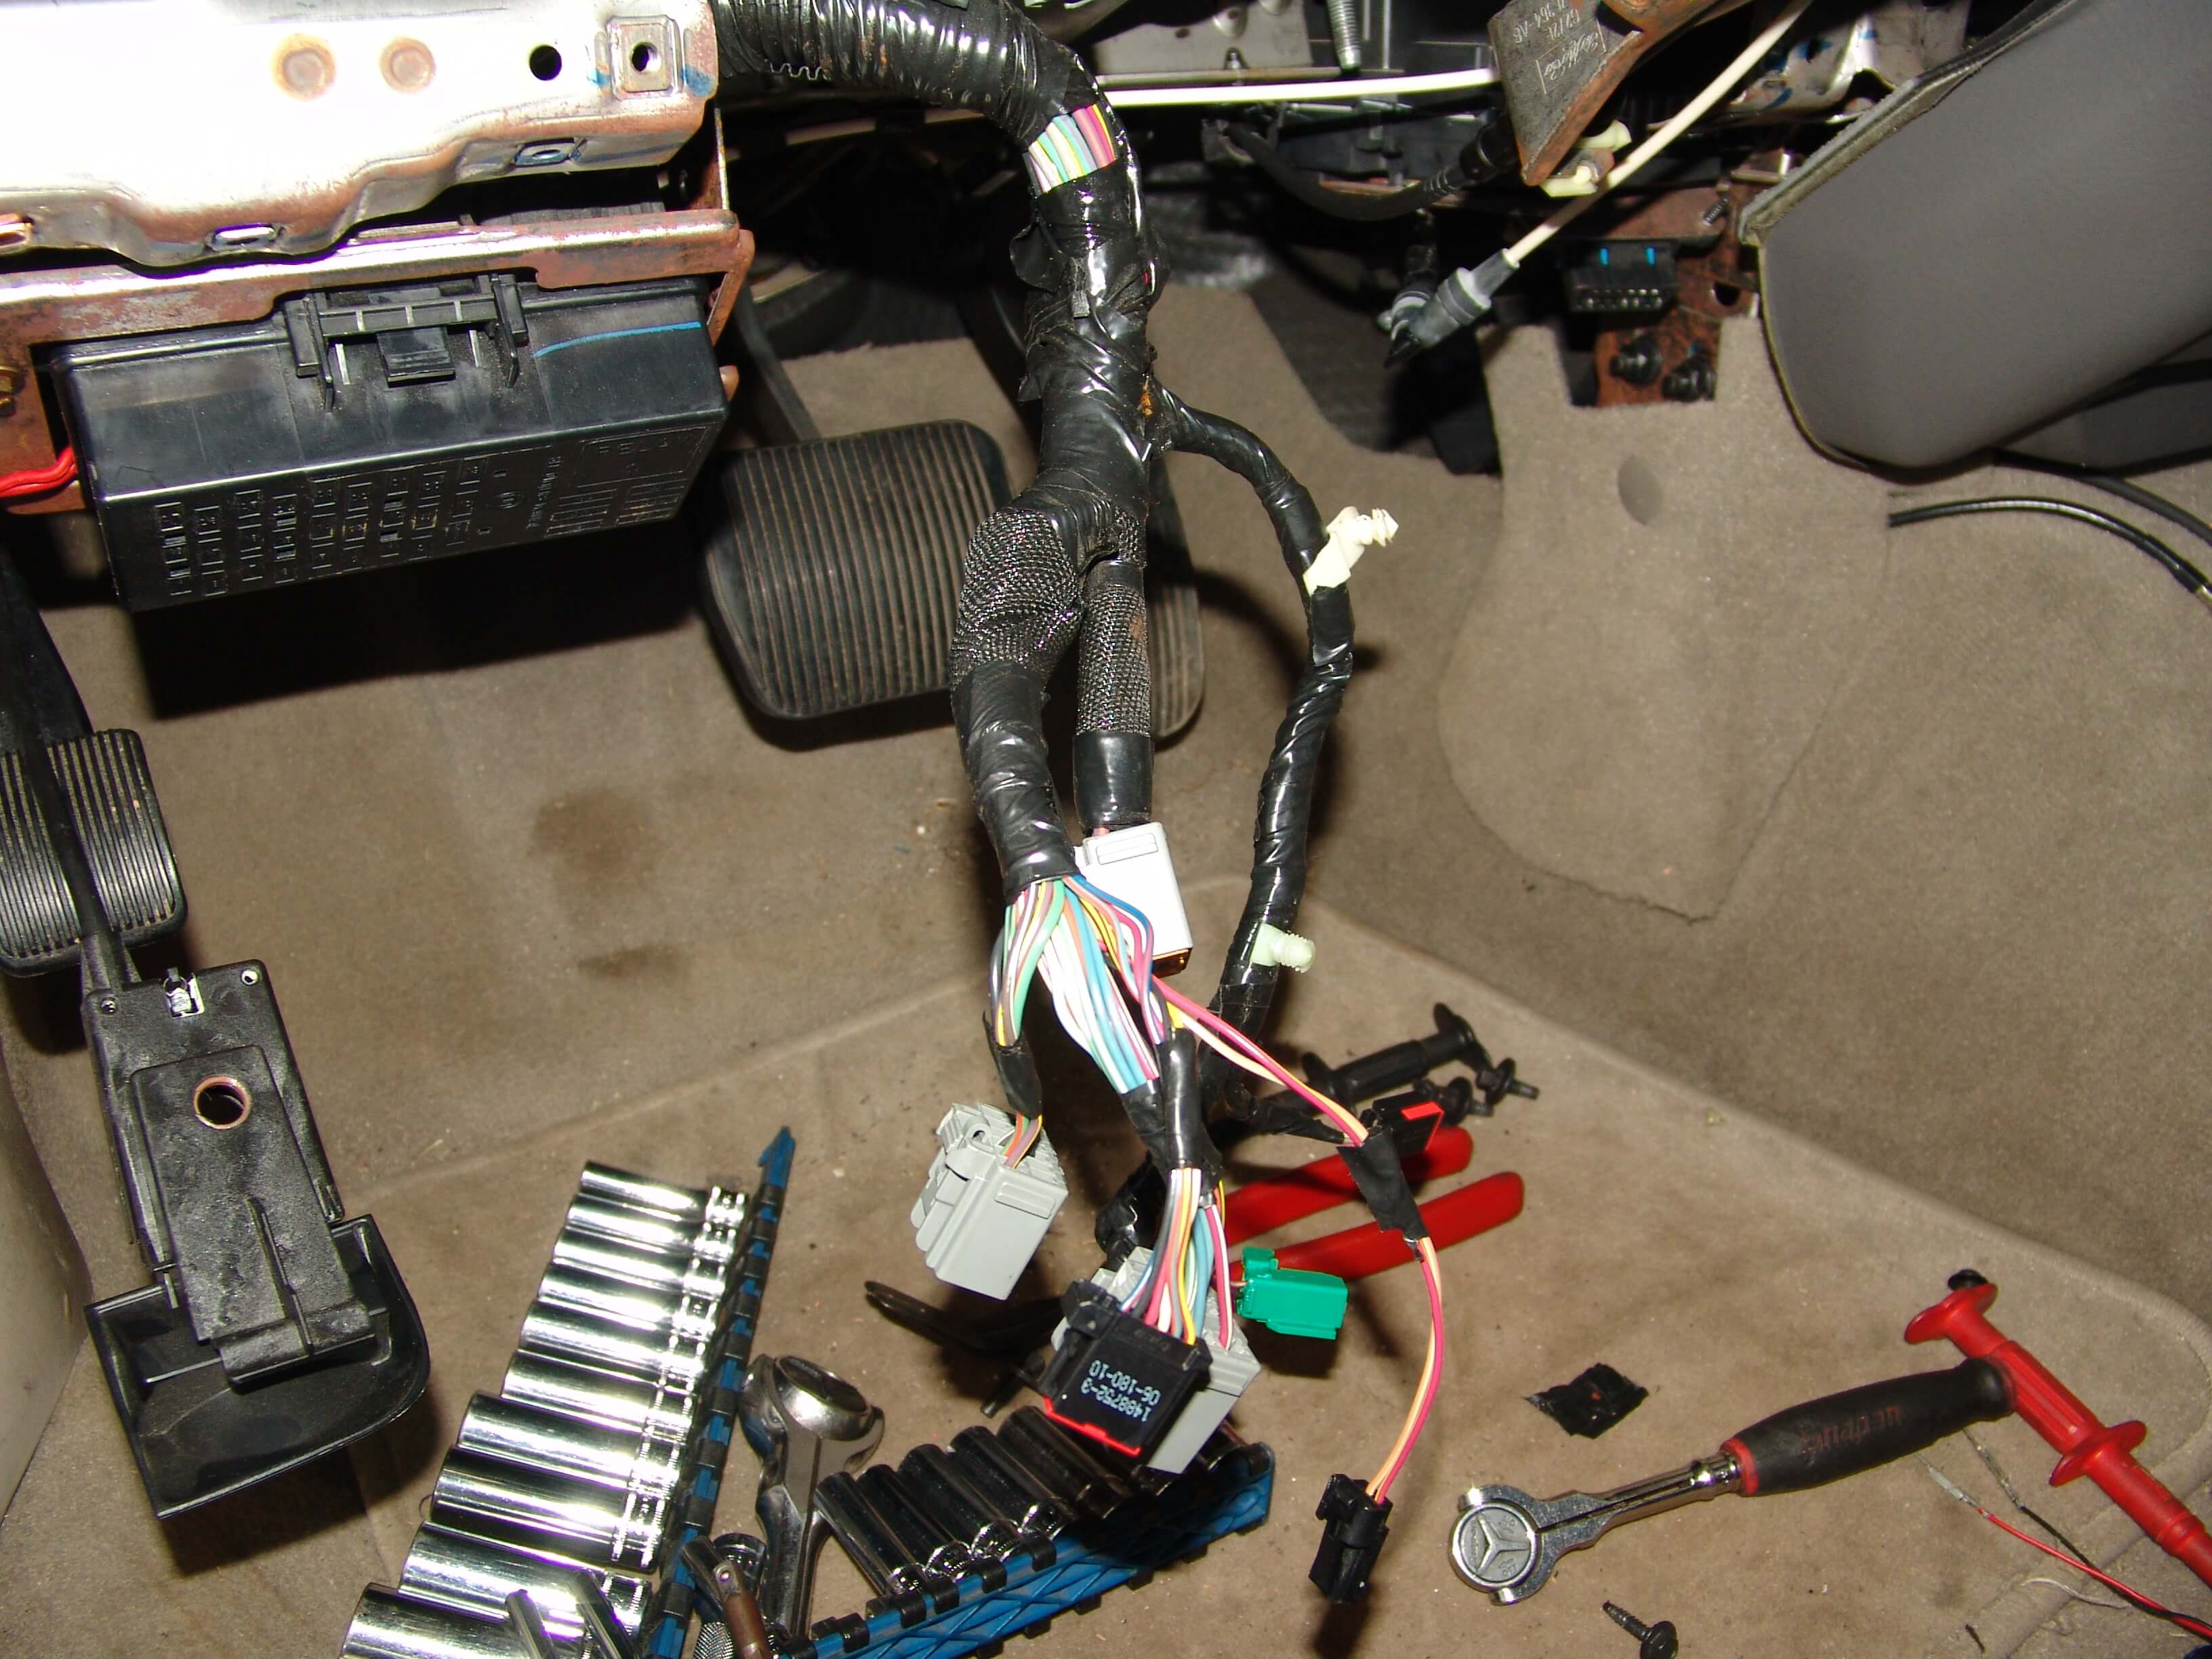 Sparkys Answers 2007 Lincoln Town Car Removing The Steering Column Saturn Diagram A 13 Mm Socket And 3 8 Ratchet Are Needed To Remove Coupling Bolt